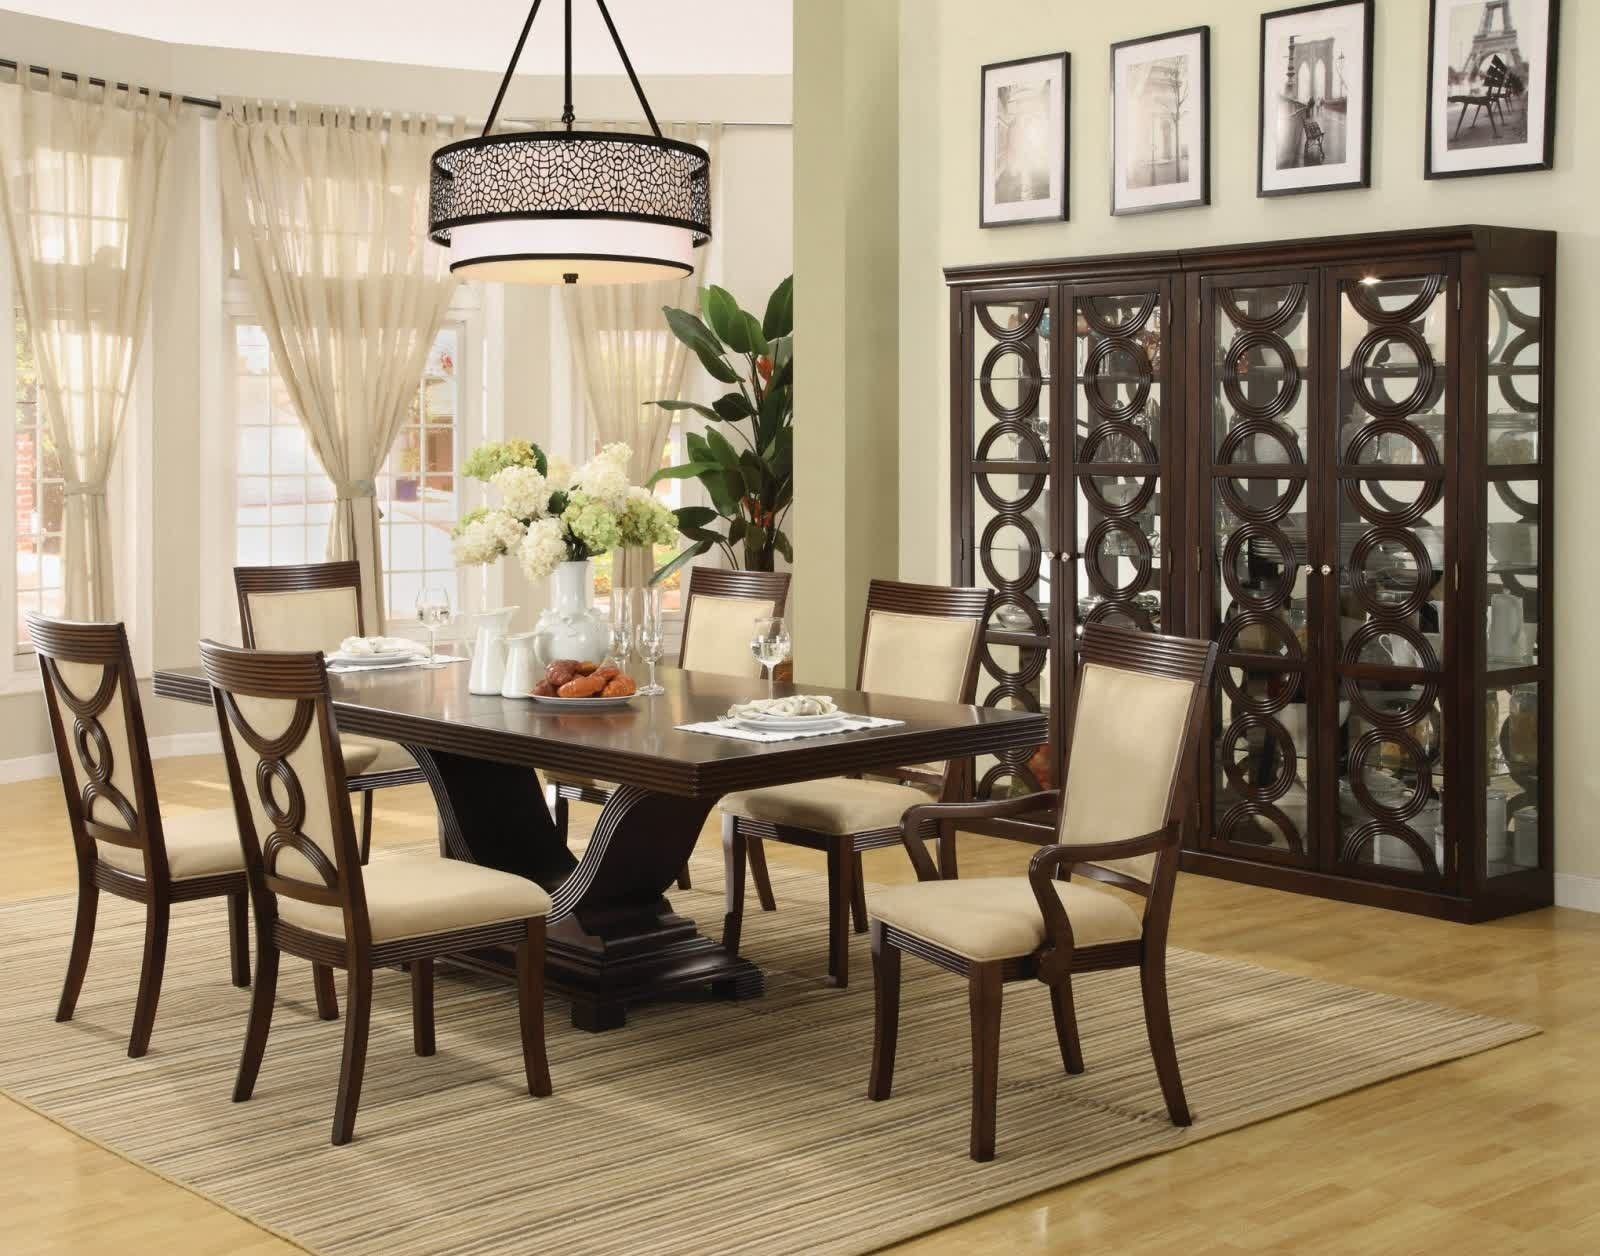 10 Elegant Dining Room Table Decorating Ideas Pictures dining room formal dining table centerpiece ideas 8 the minimalist